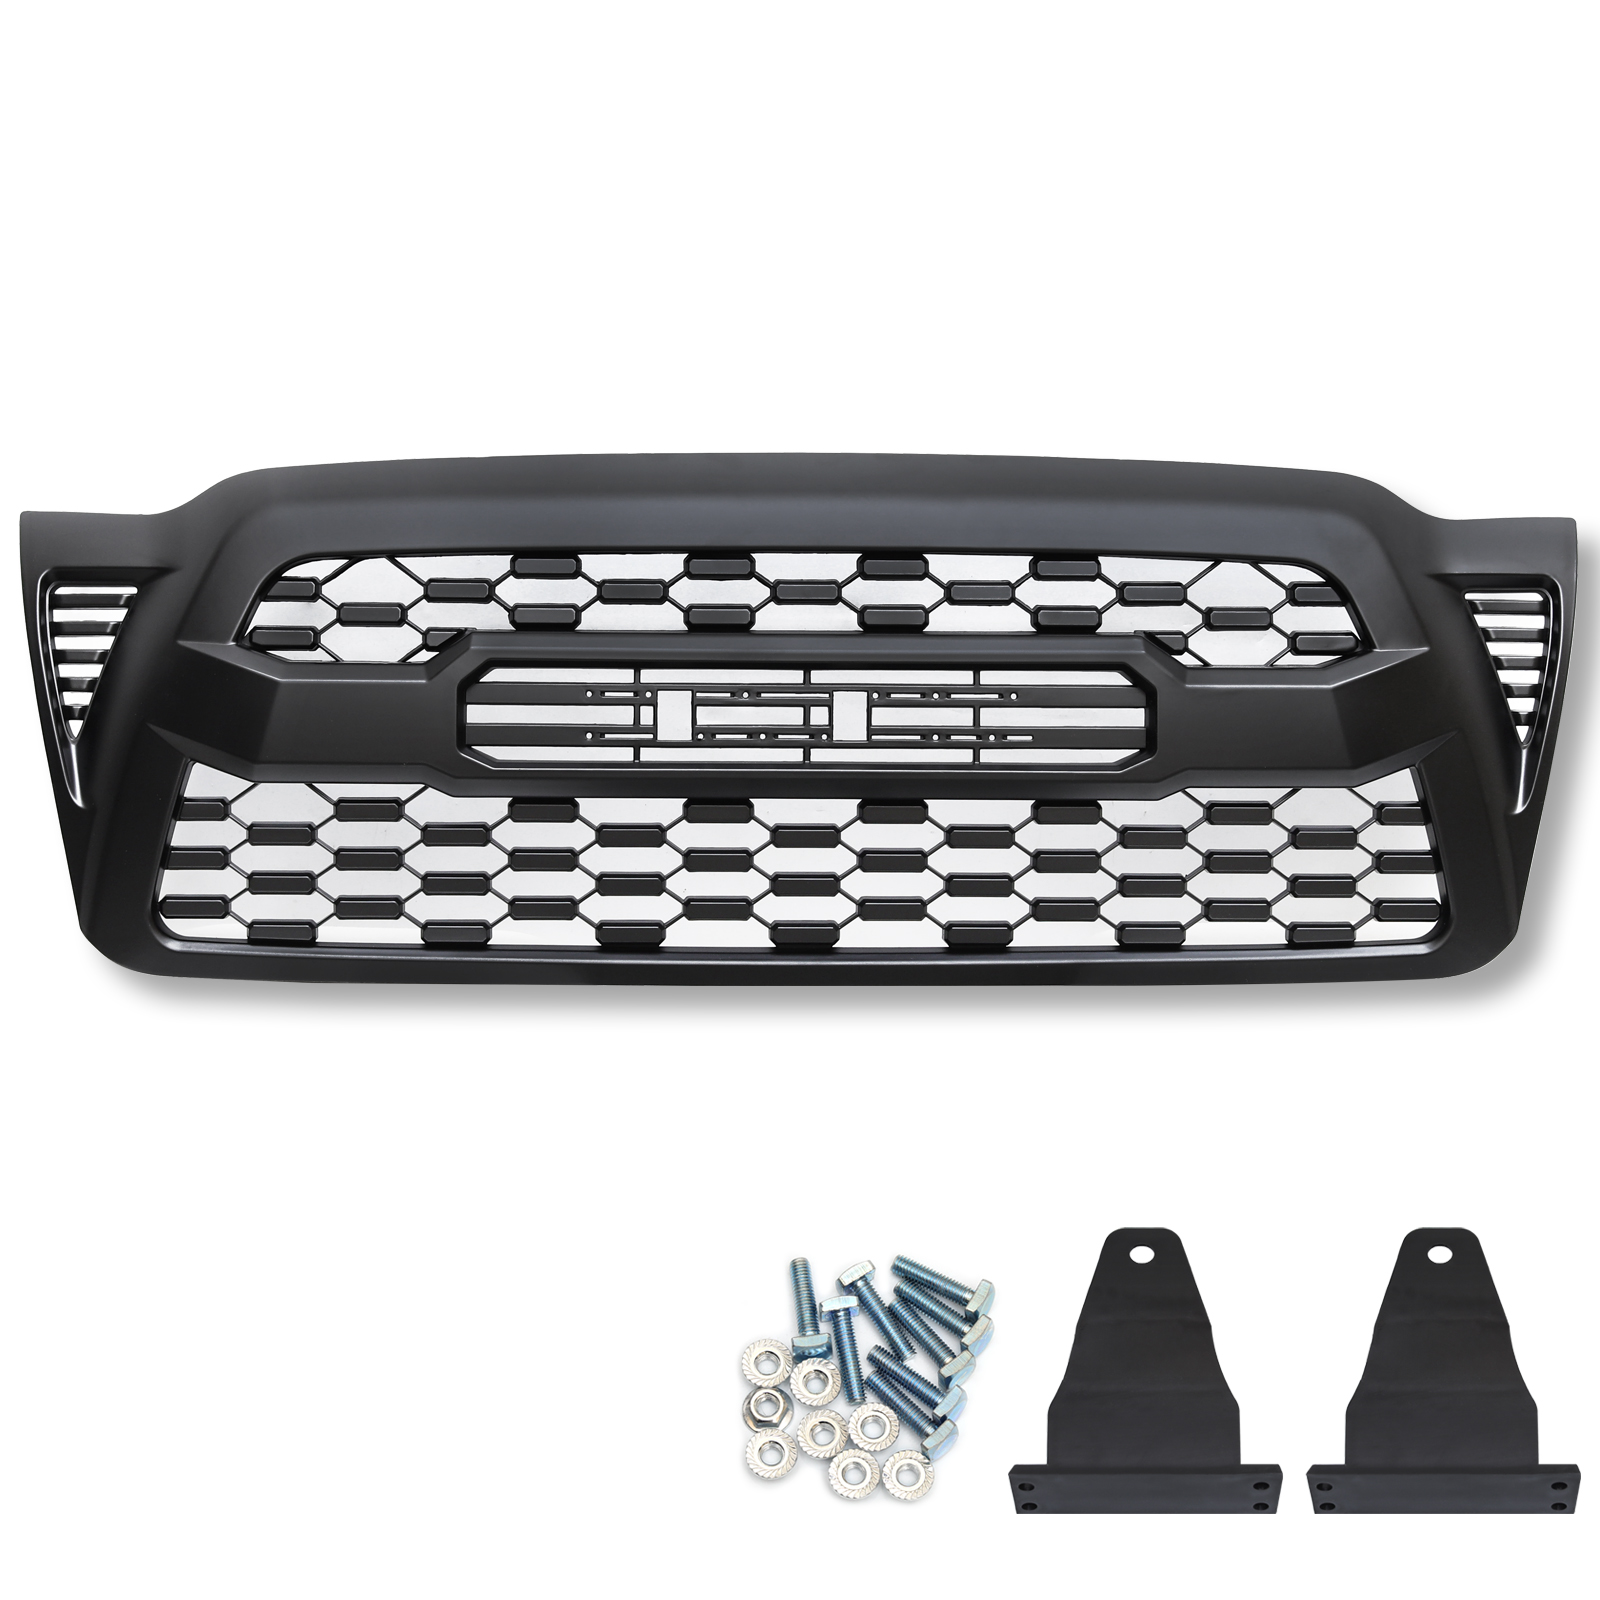 Front Bumper Hood Grille Grill For Toyota Tacoma 2005-2011 ABS Plastic Car Auto Accessorie Grille Matte Black with LettersFront Bumper Hood Grille Grill For Toyota Tacoma 2005-2011 ABS Plastic Car Auto Accessorie Grille Matte Black with Letters